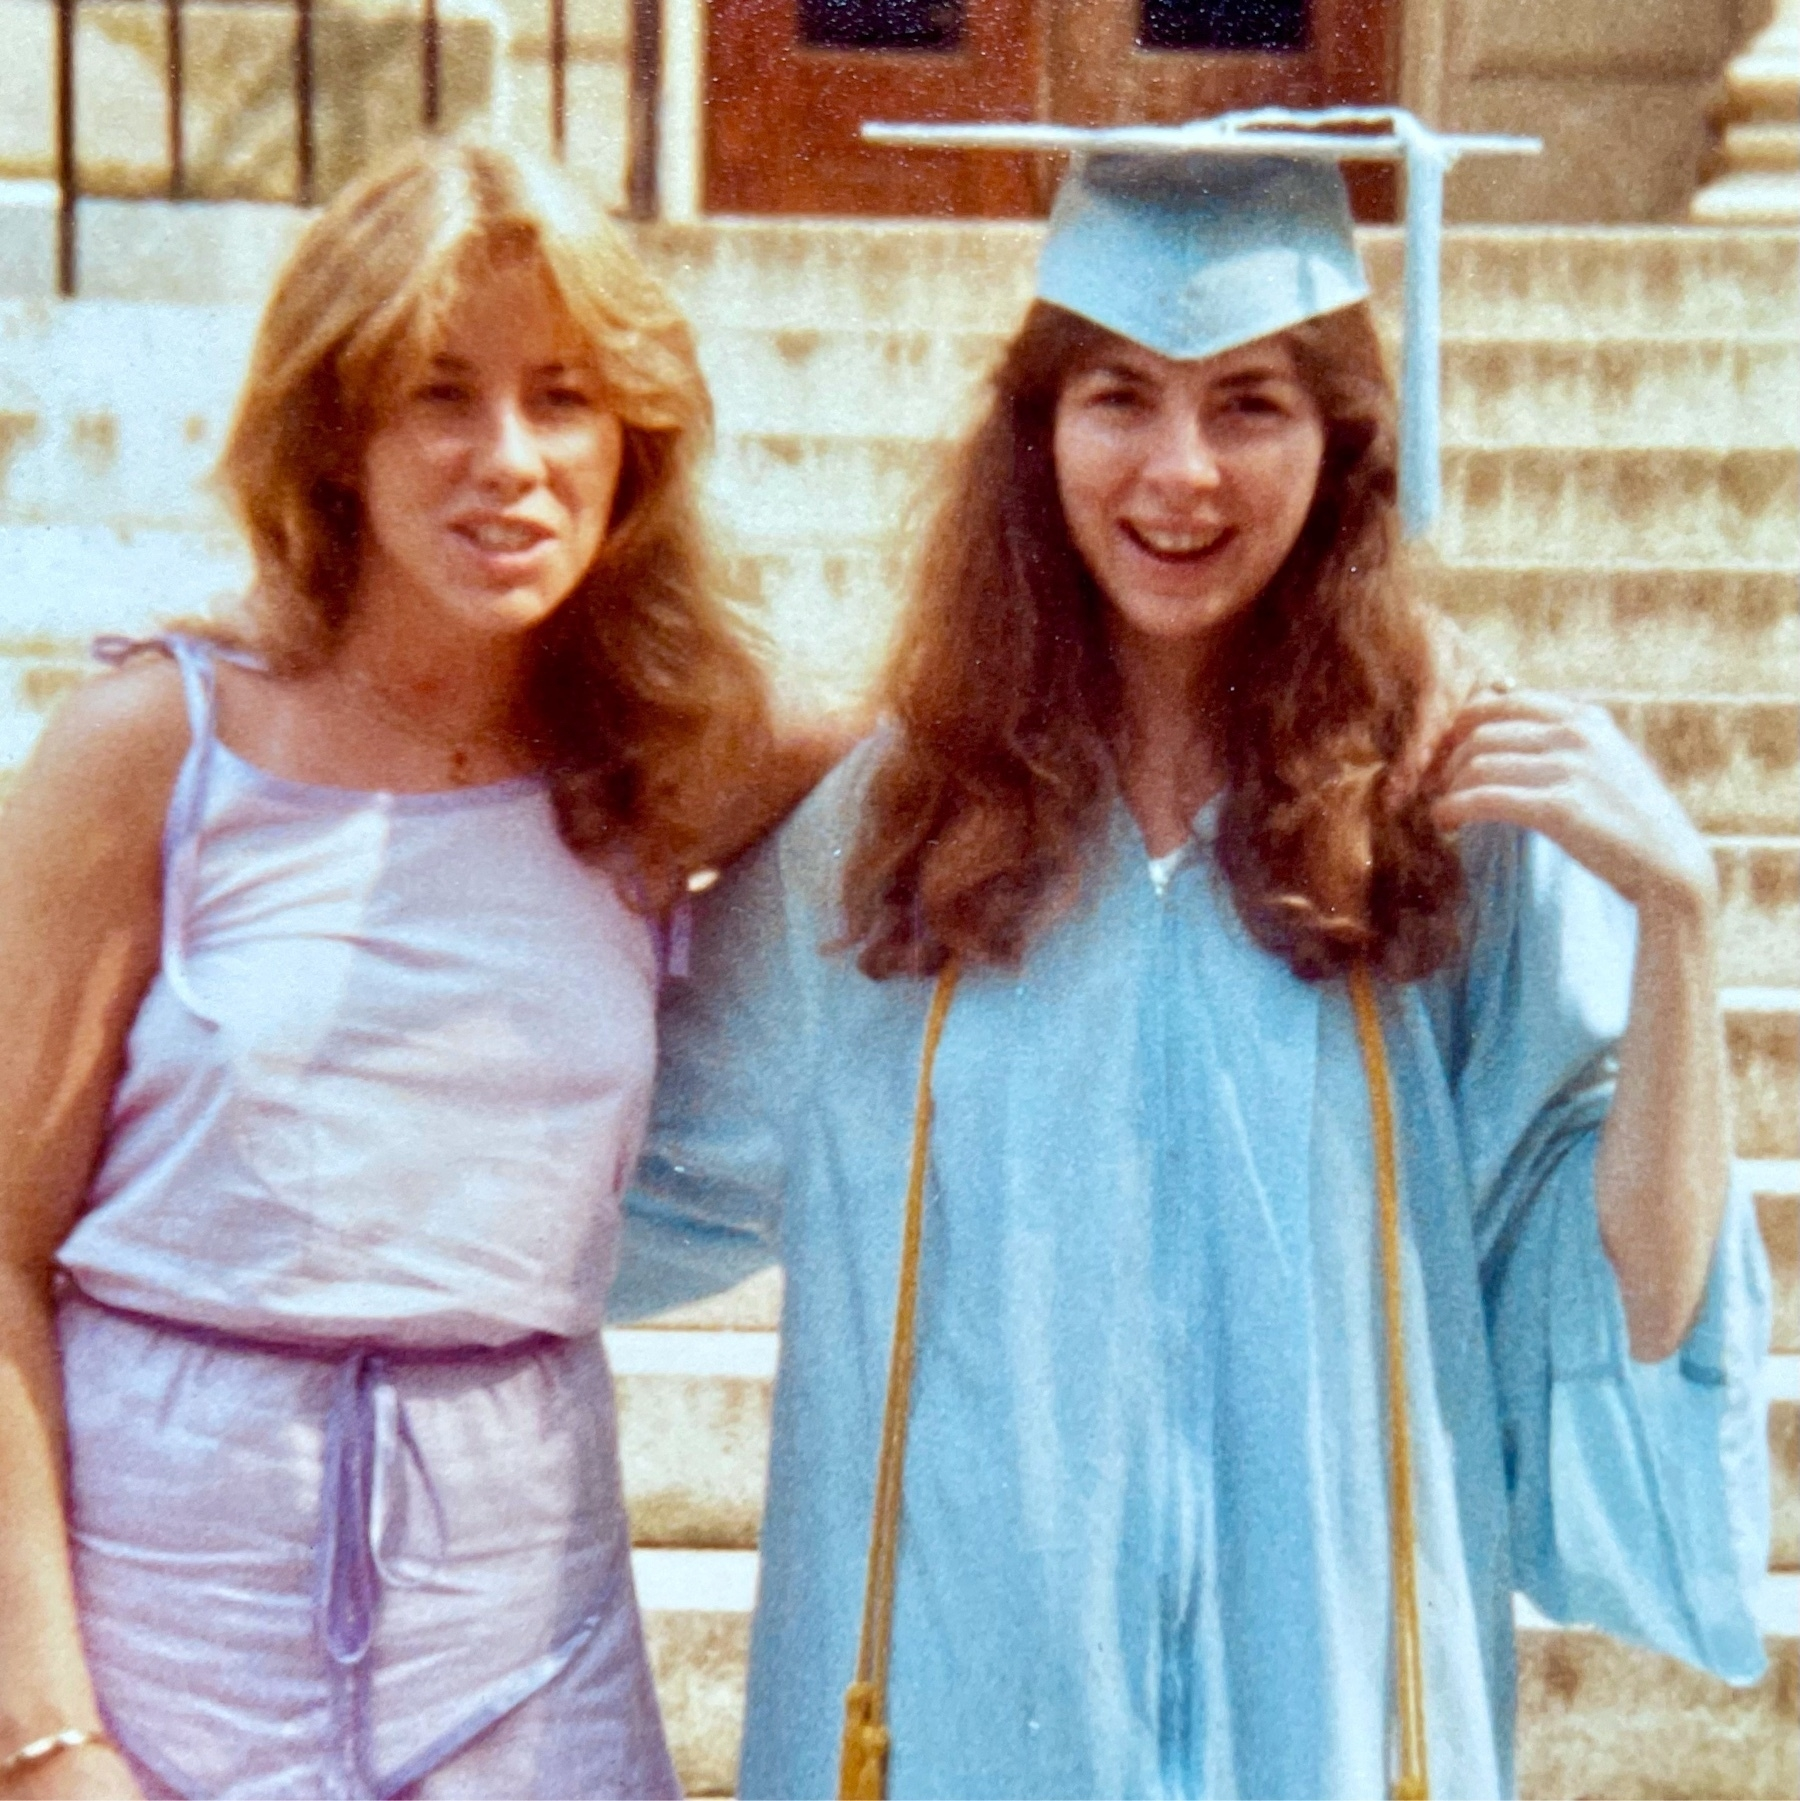 Me in blue graduation gown with my sister